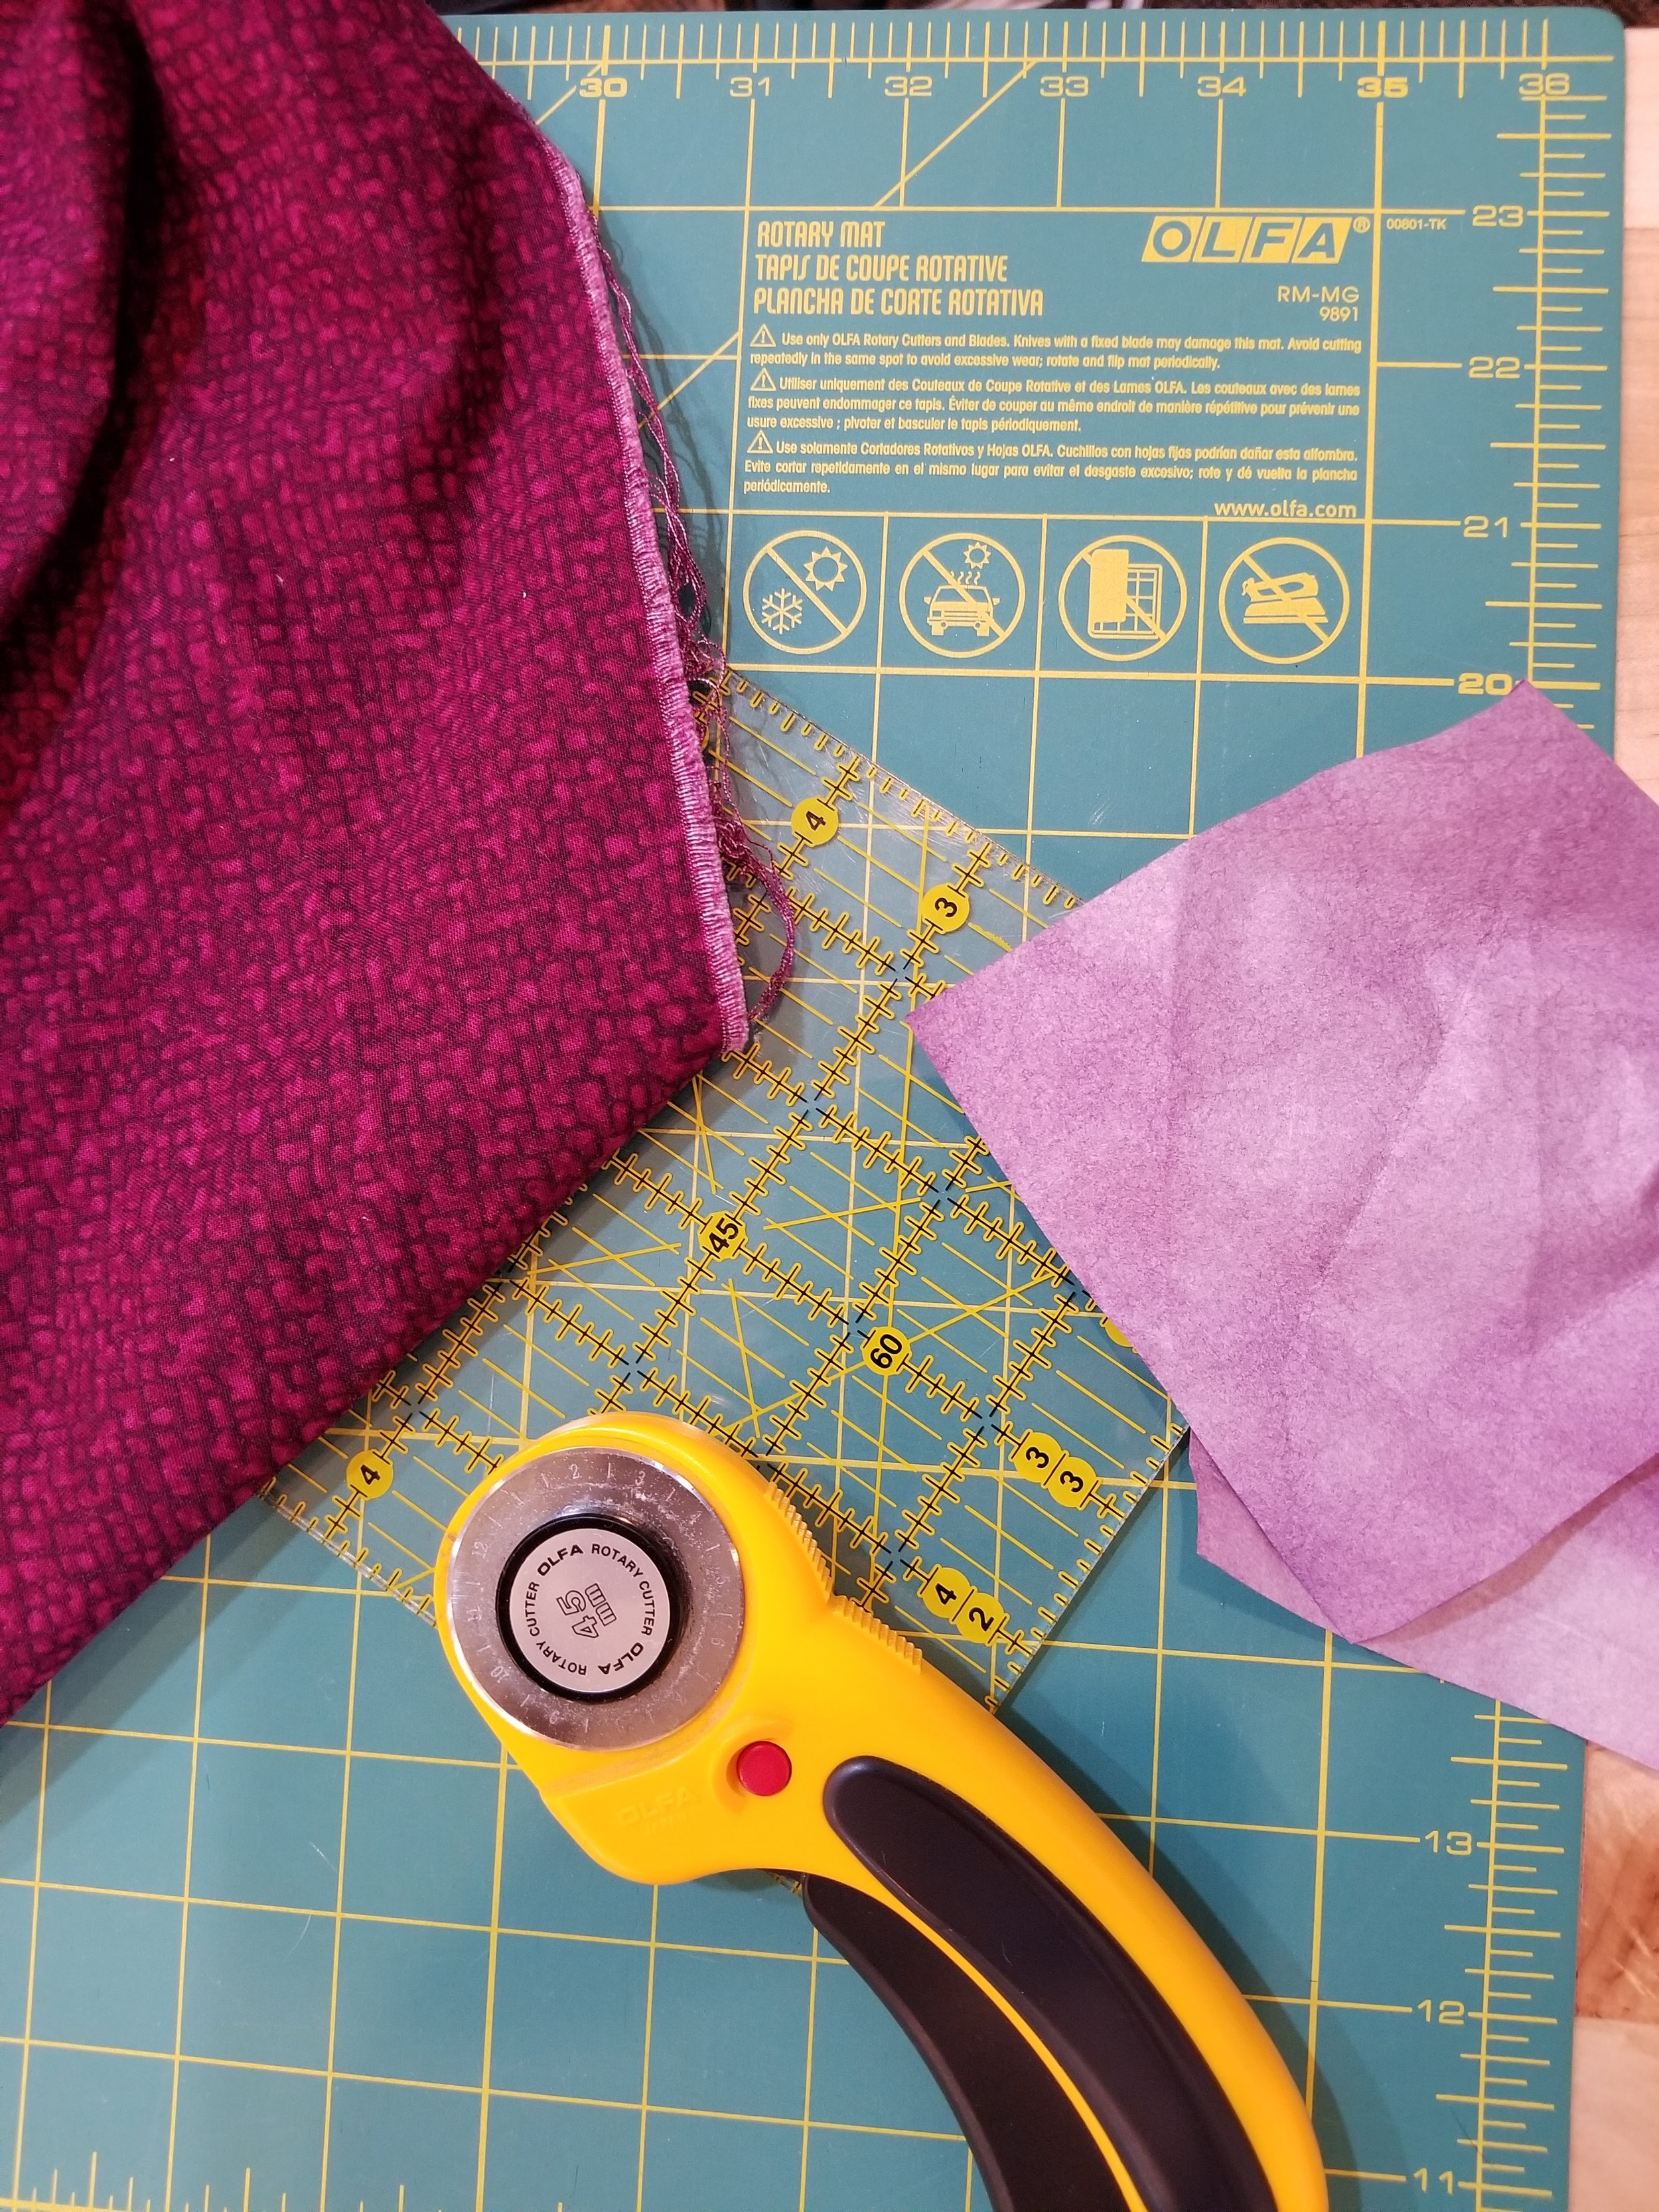 The ruler and rotary cutter takes care of the frayed edges and selvages. This colour catcher took care of pulling the dye out so no future bleeds onto other laundry items or the rest of the quilt.